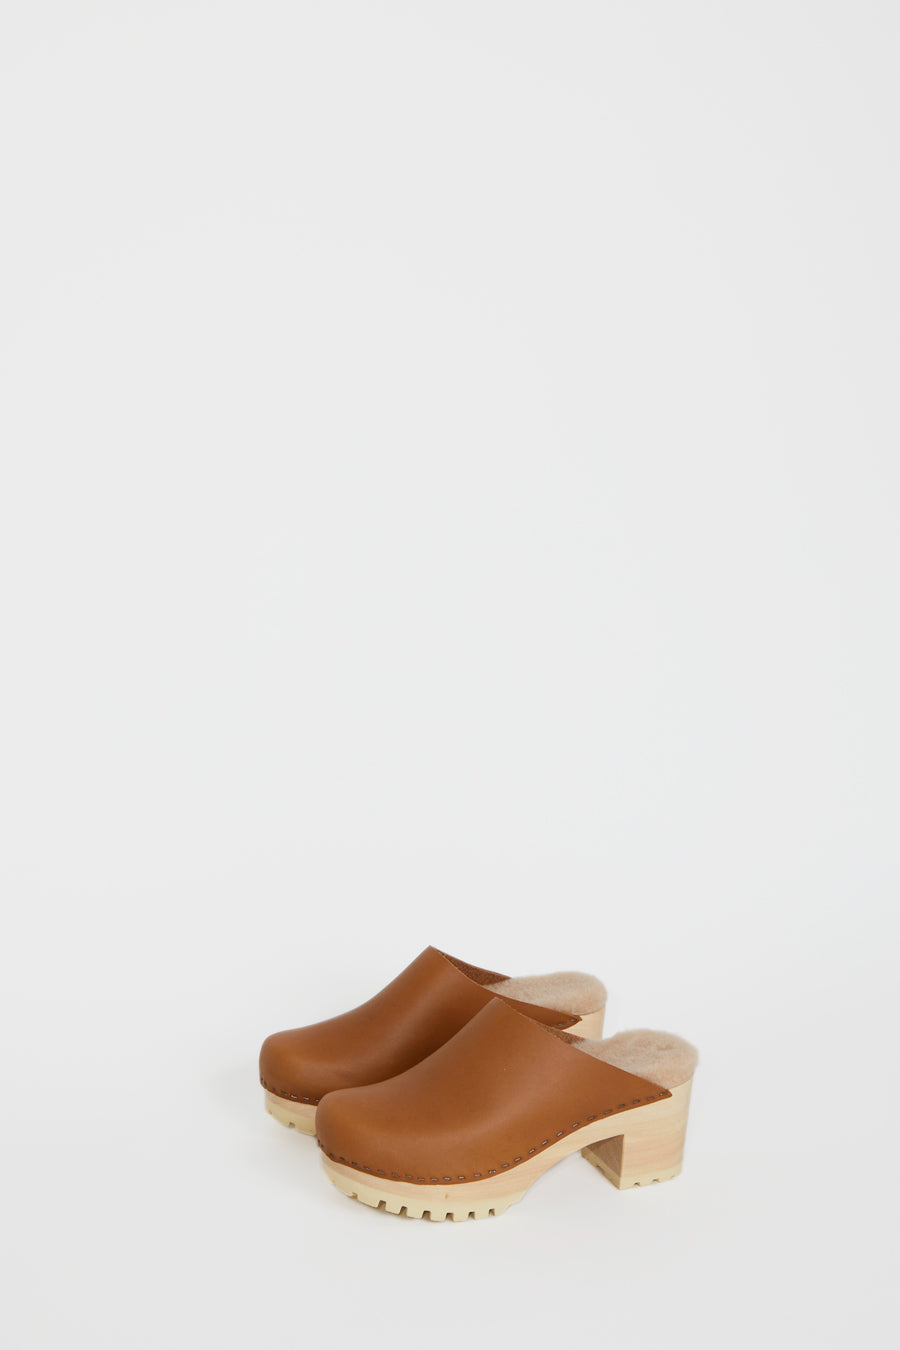 No.6 Liza Clog on Mid Tread in Palomino with Bone Shearling on White Base